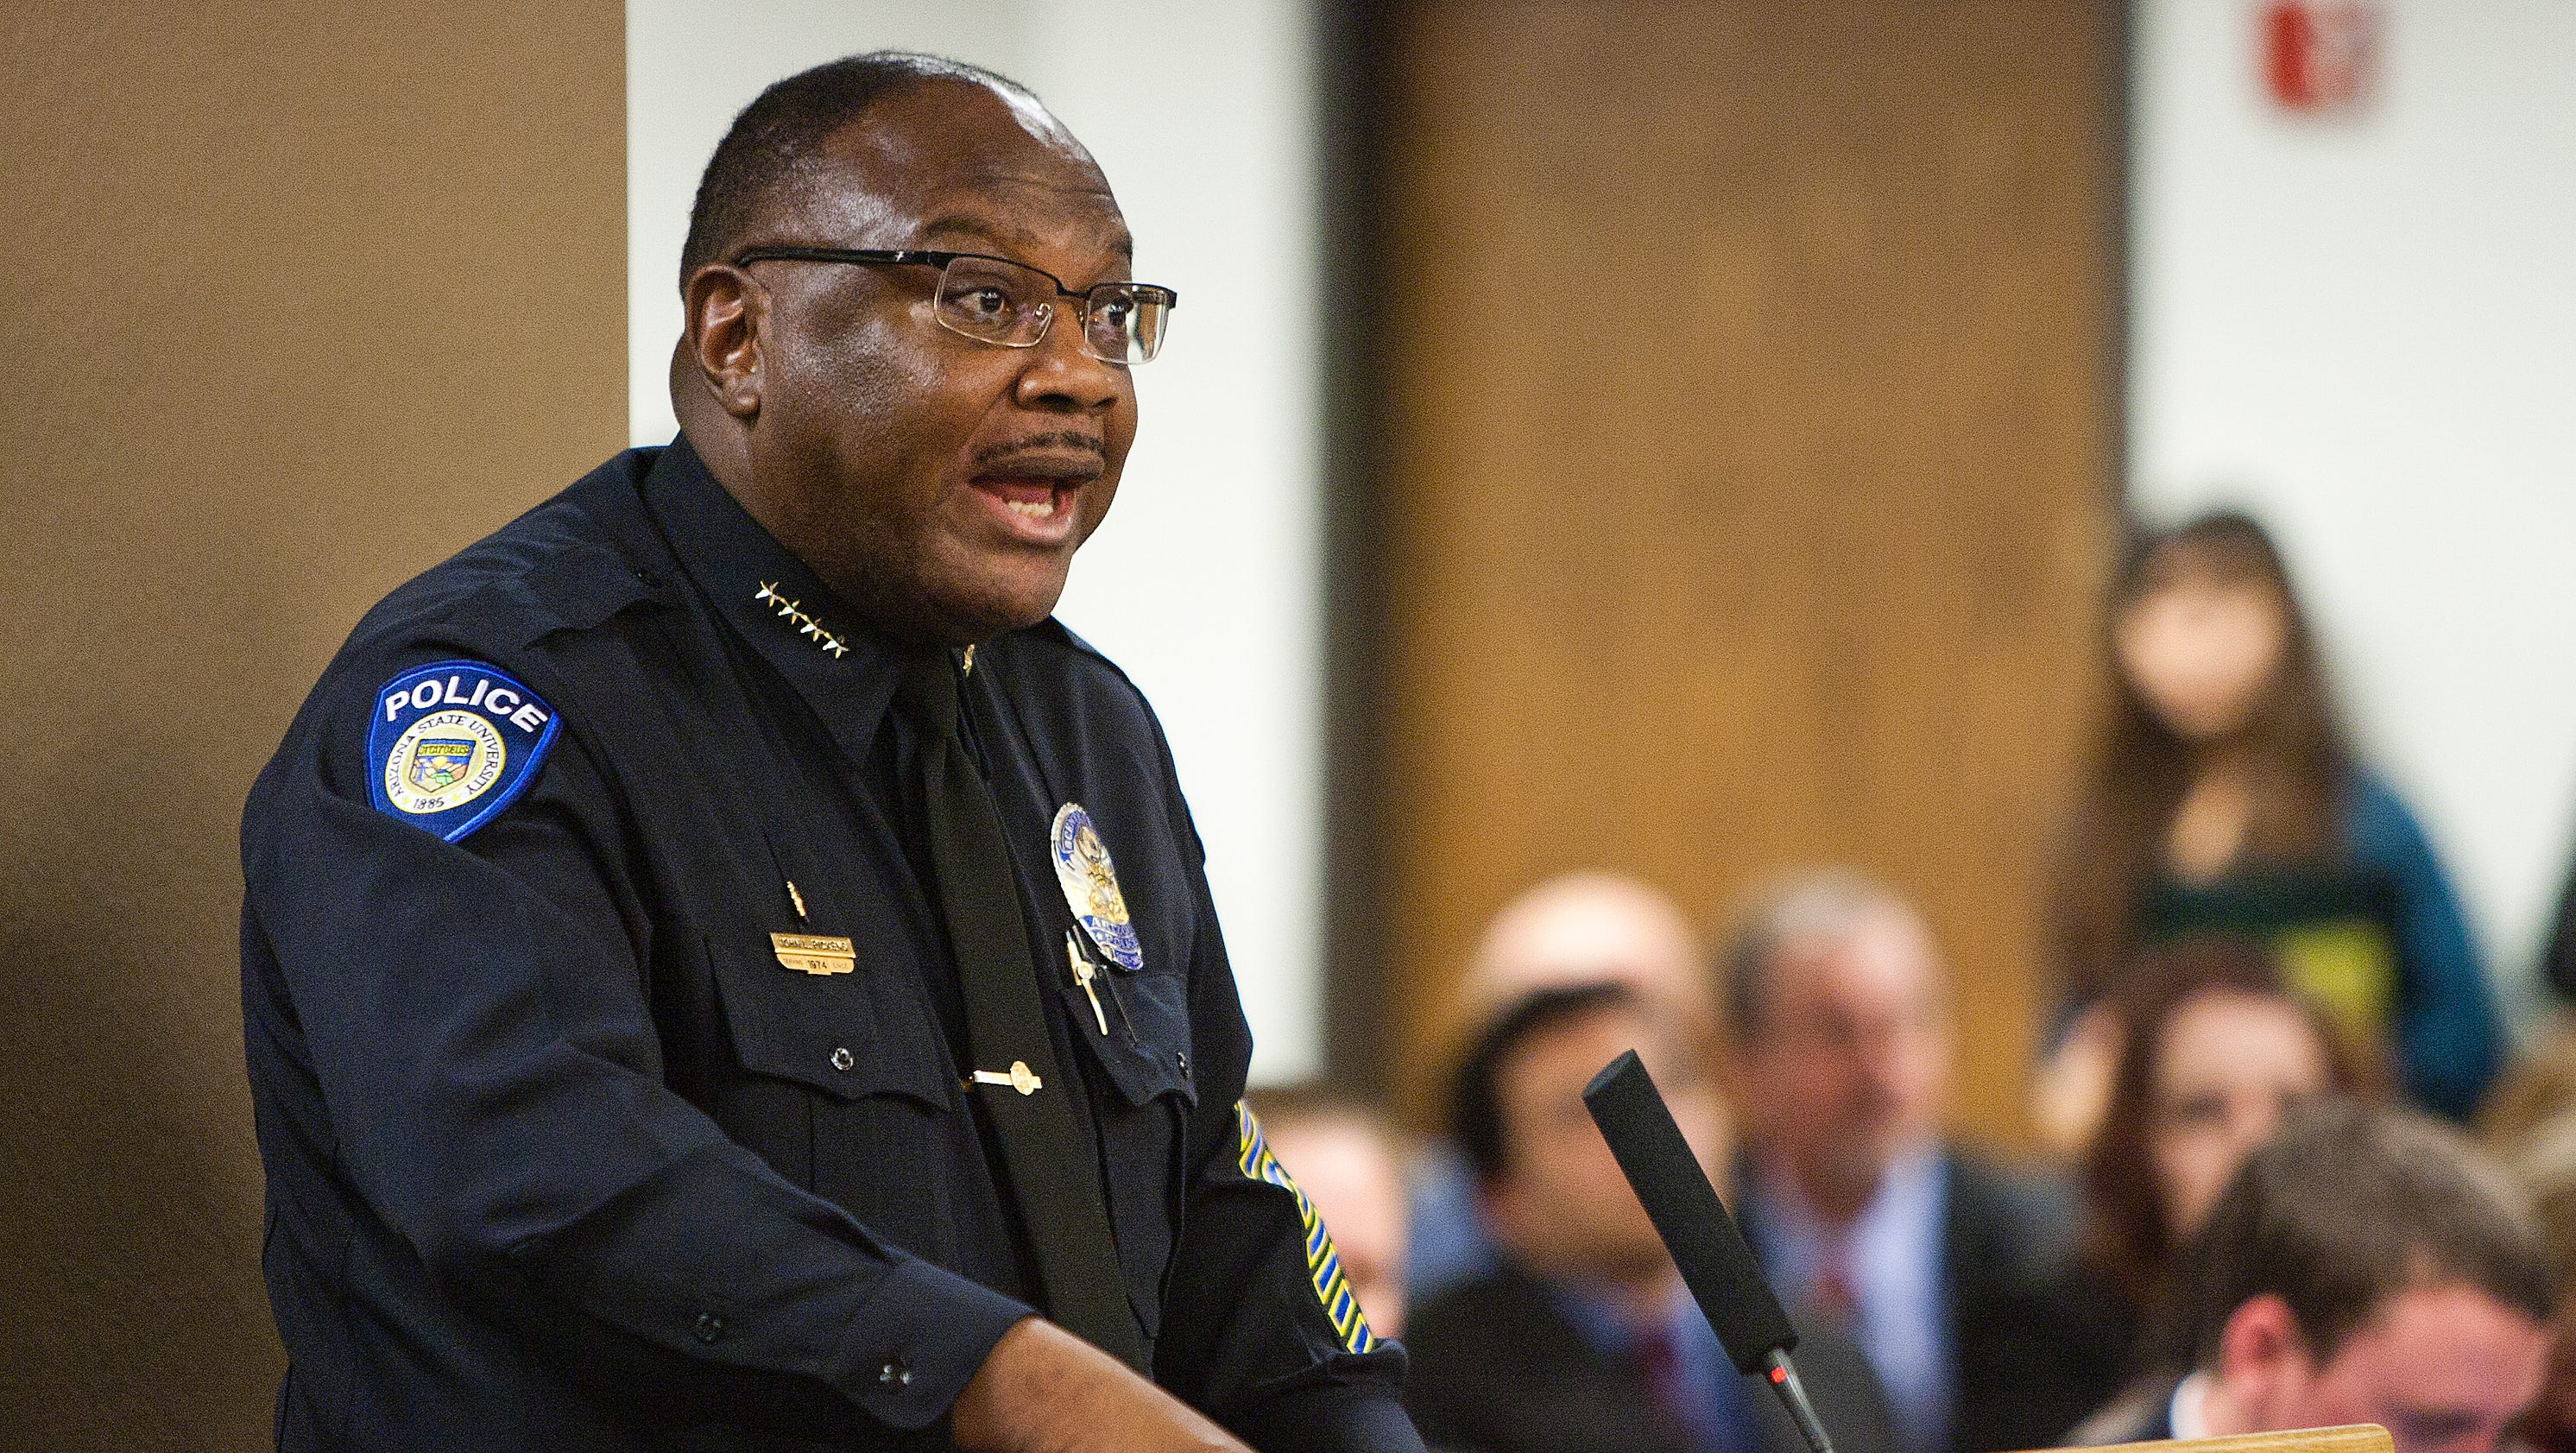 Asu Police Chief John Pickens To Step Down Early